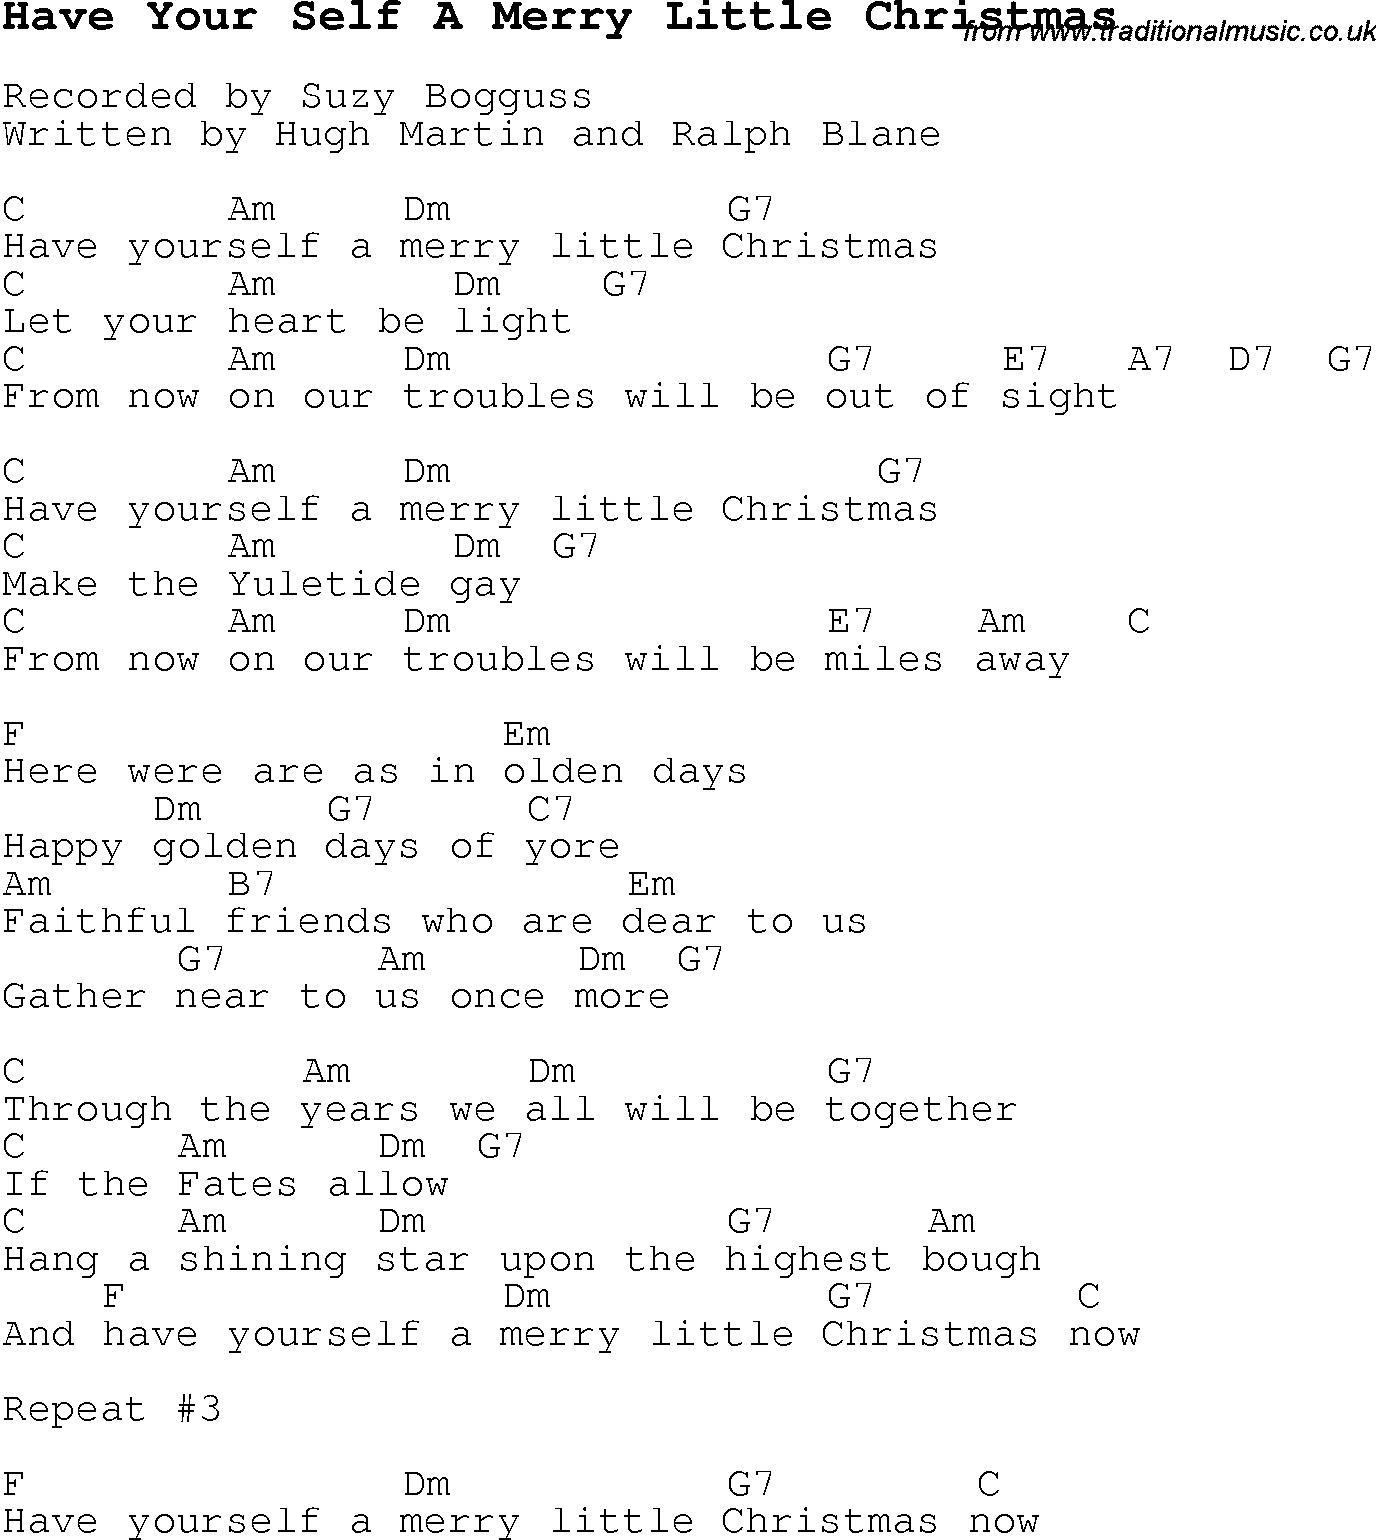 Have Yourself A Merry Little Christmas Chords Christmas Carolsong Lyrics With Chords For Have Your Self A Merry